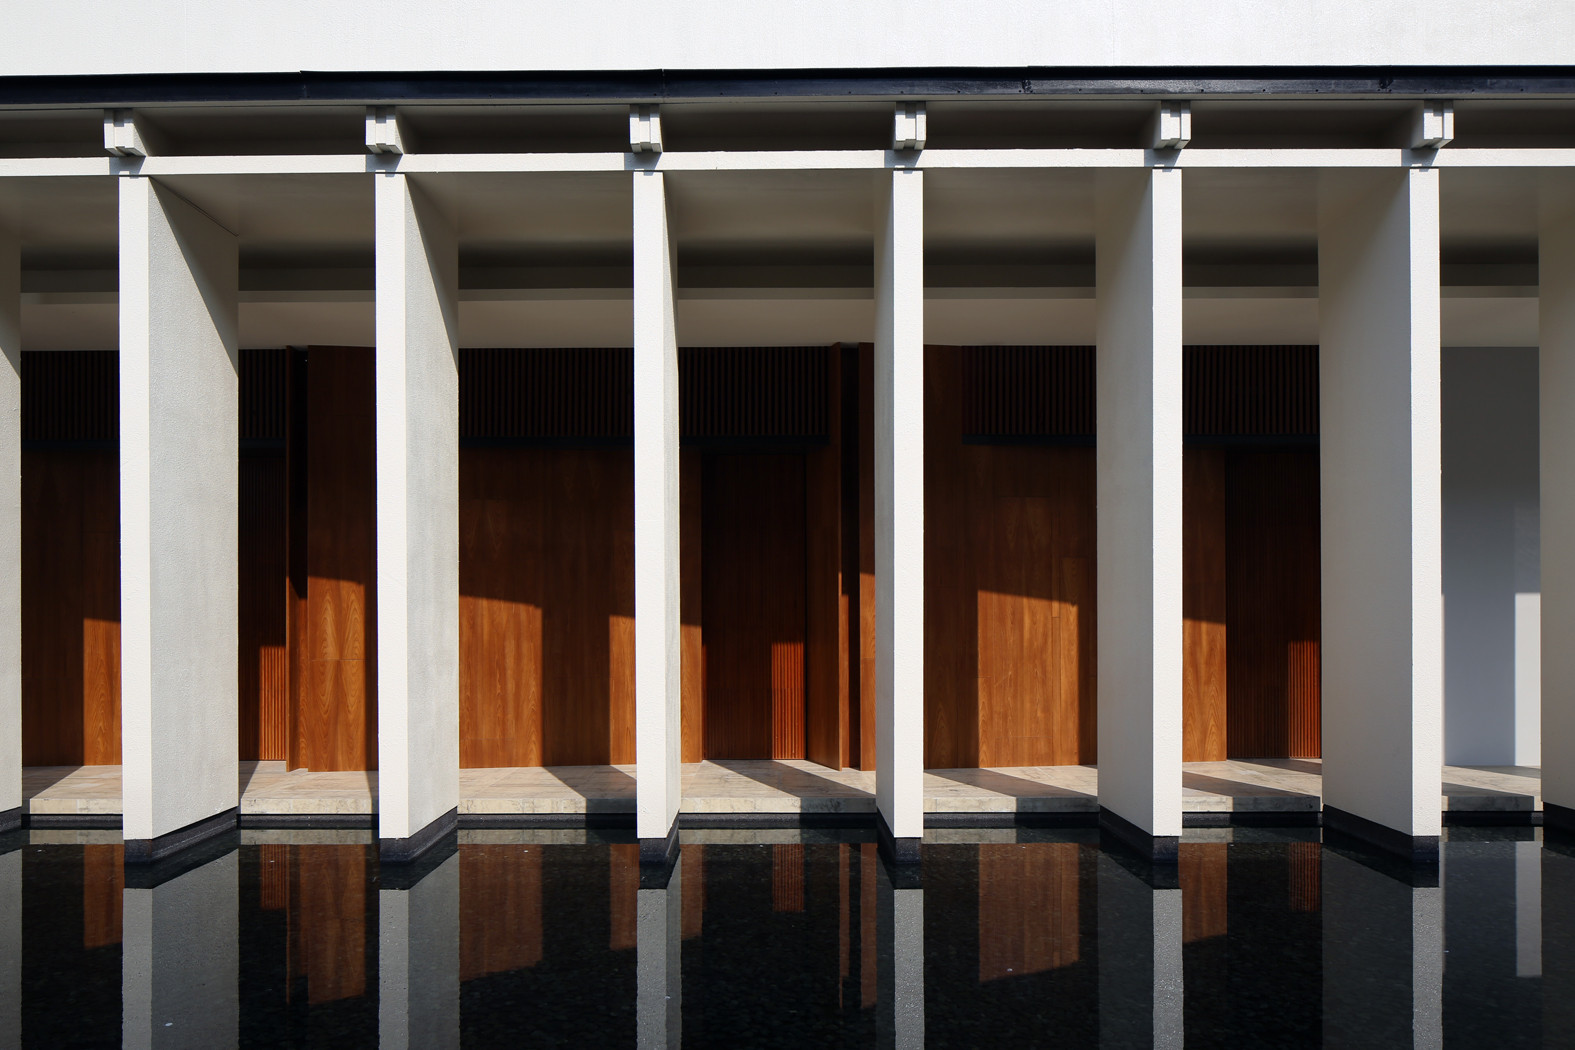 Gallery of exquisite minimalist arcadian architecture for Minimalist architecture theory